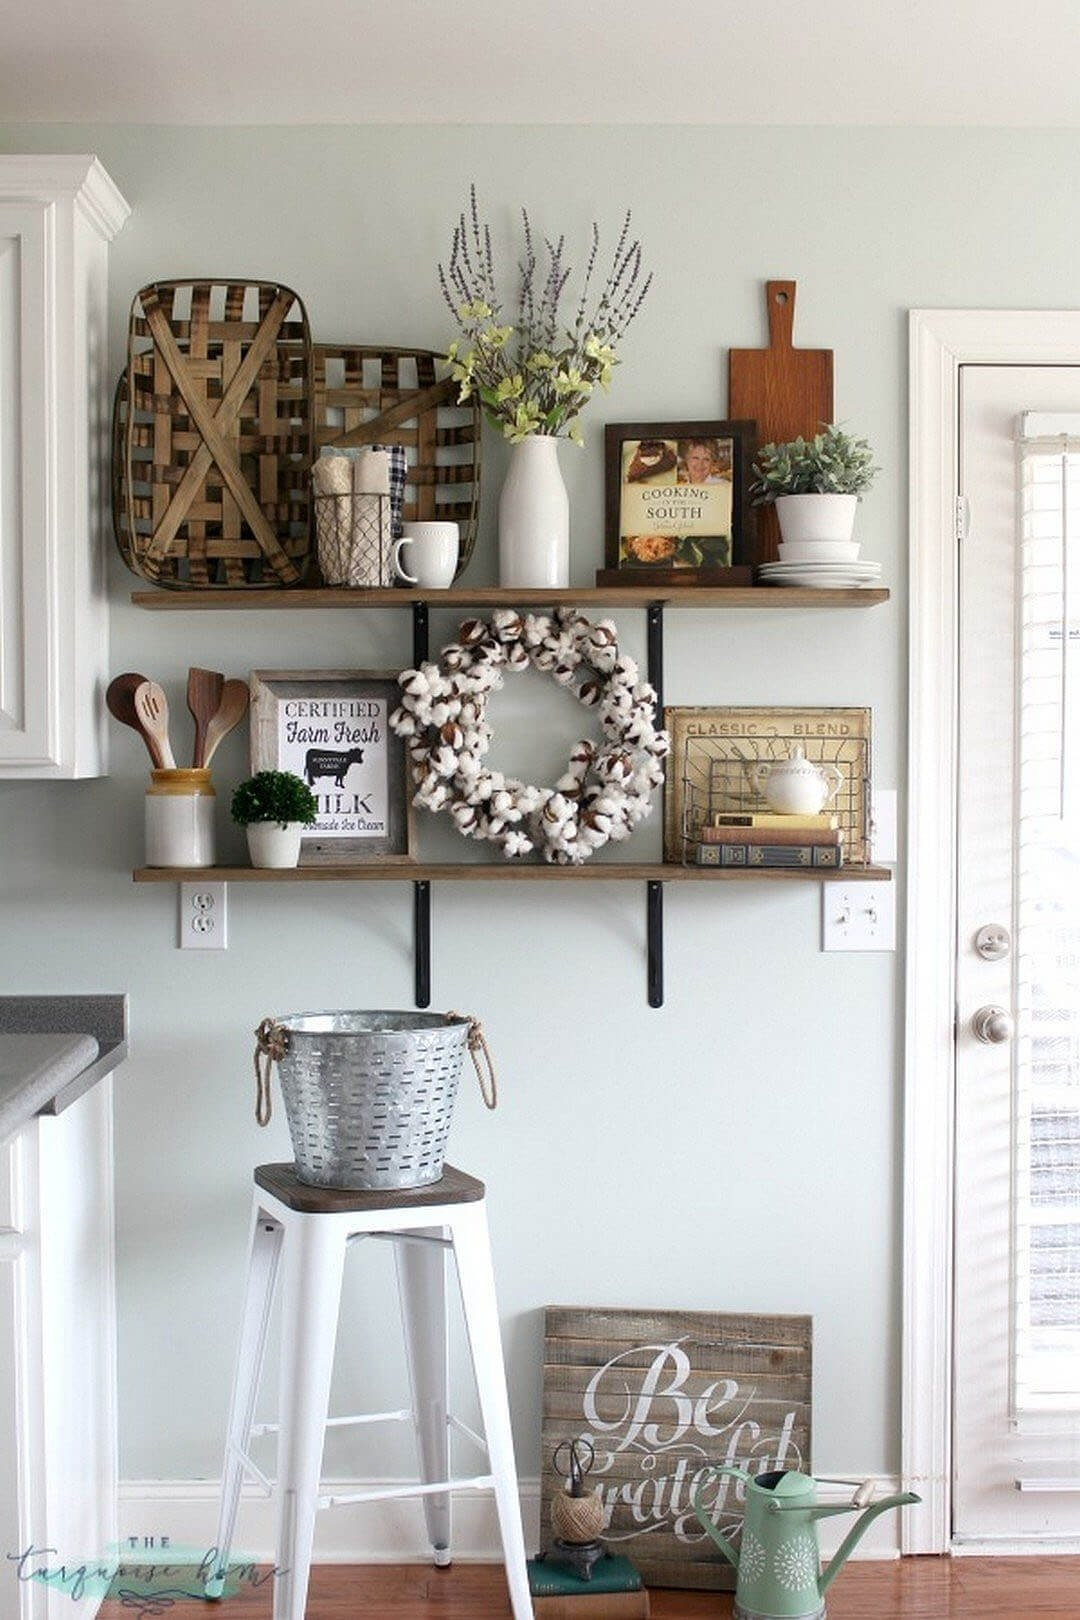 10 Trendy Wall Decor Ideas For Kitchen 36 best kitchen wall decor ideas and designs for 2018 2020